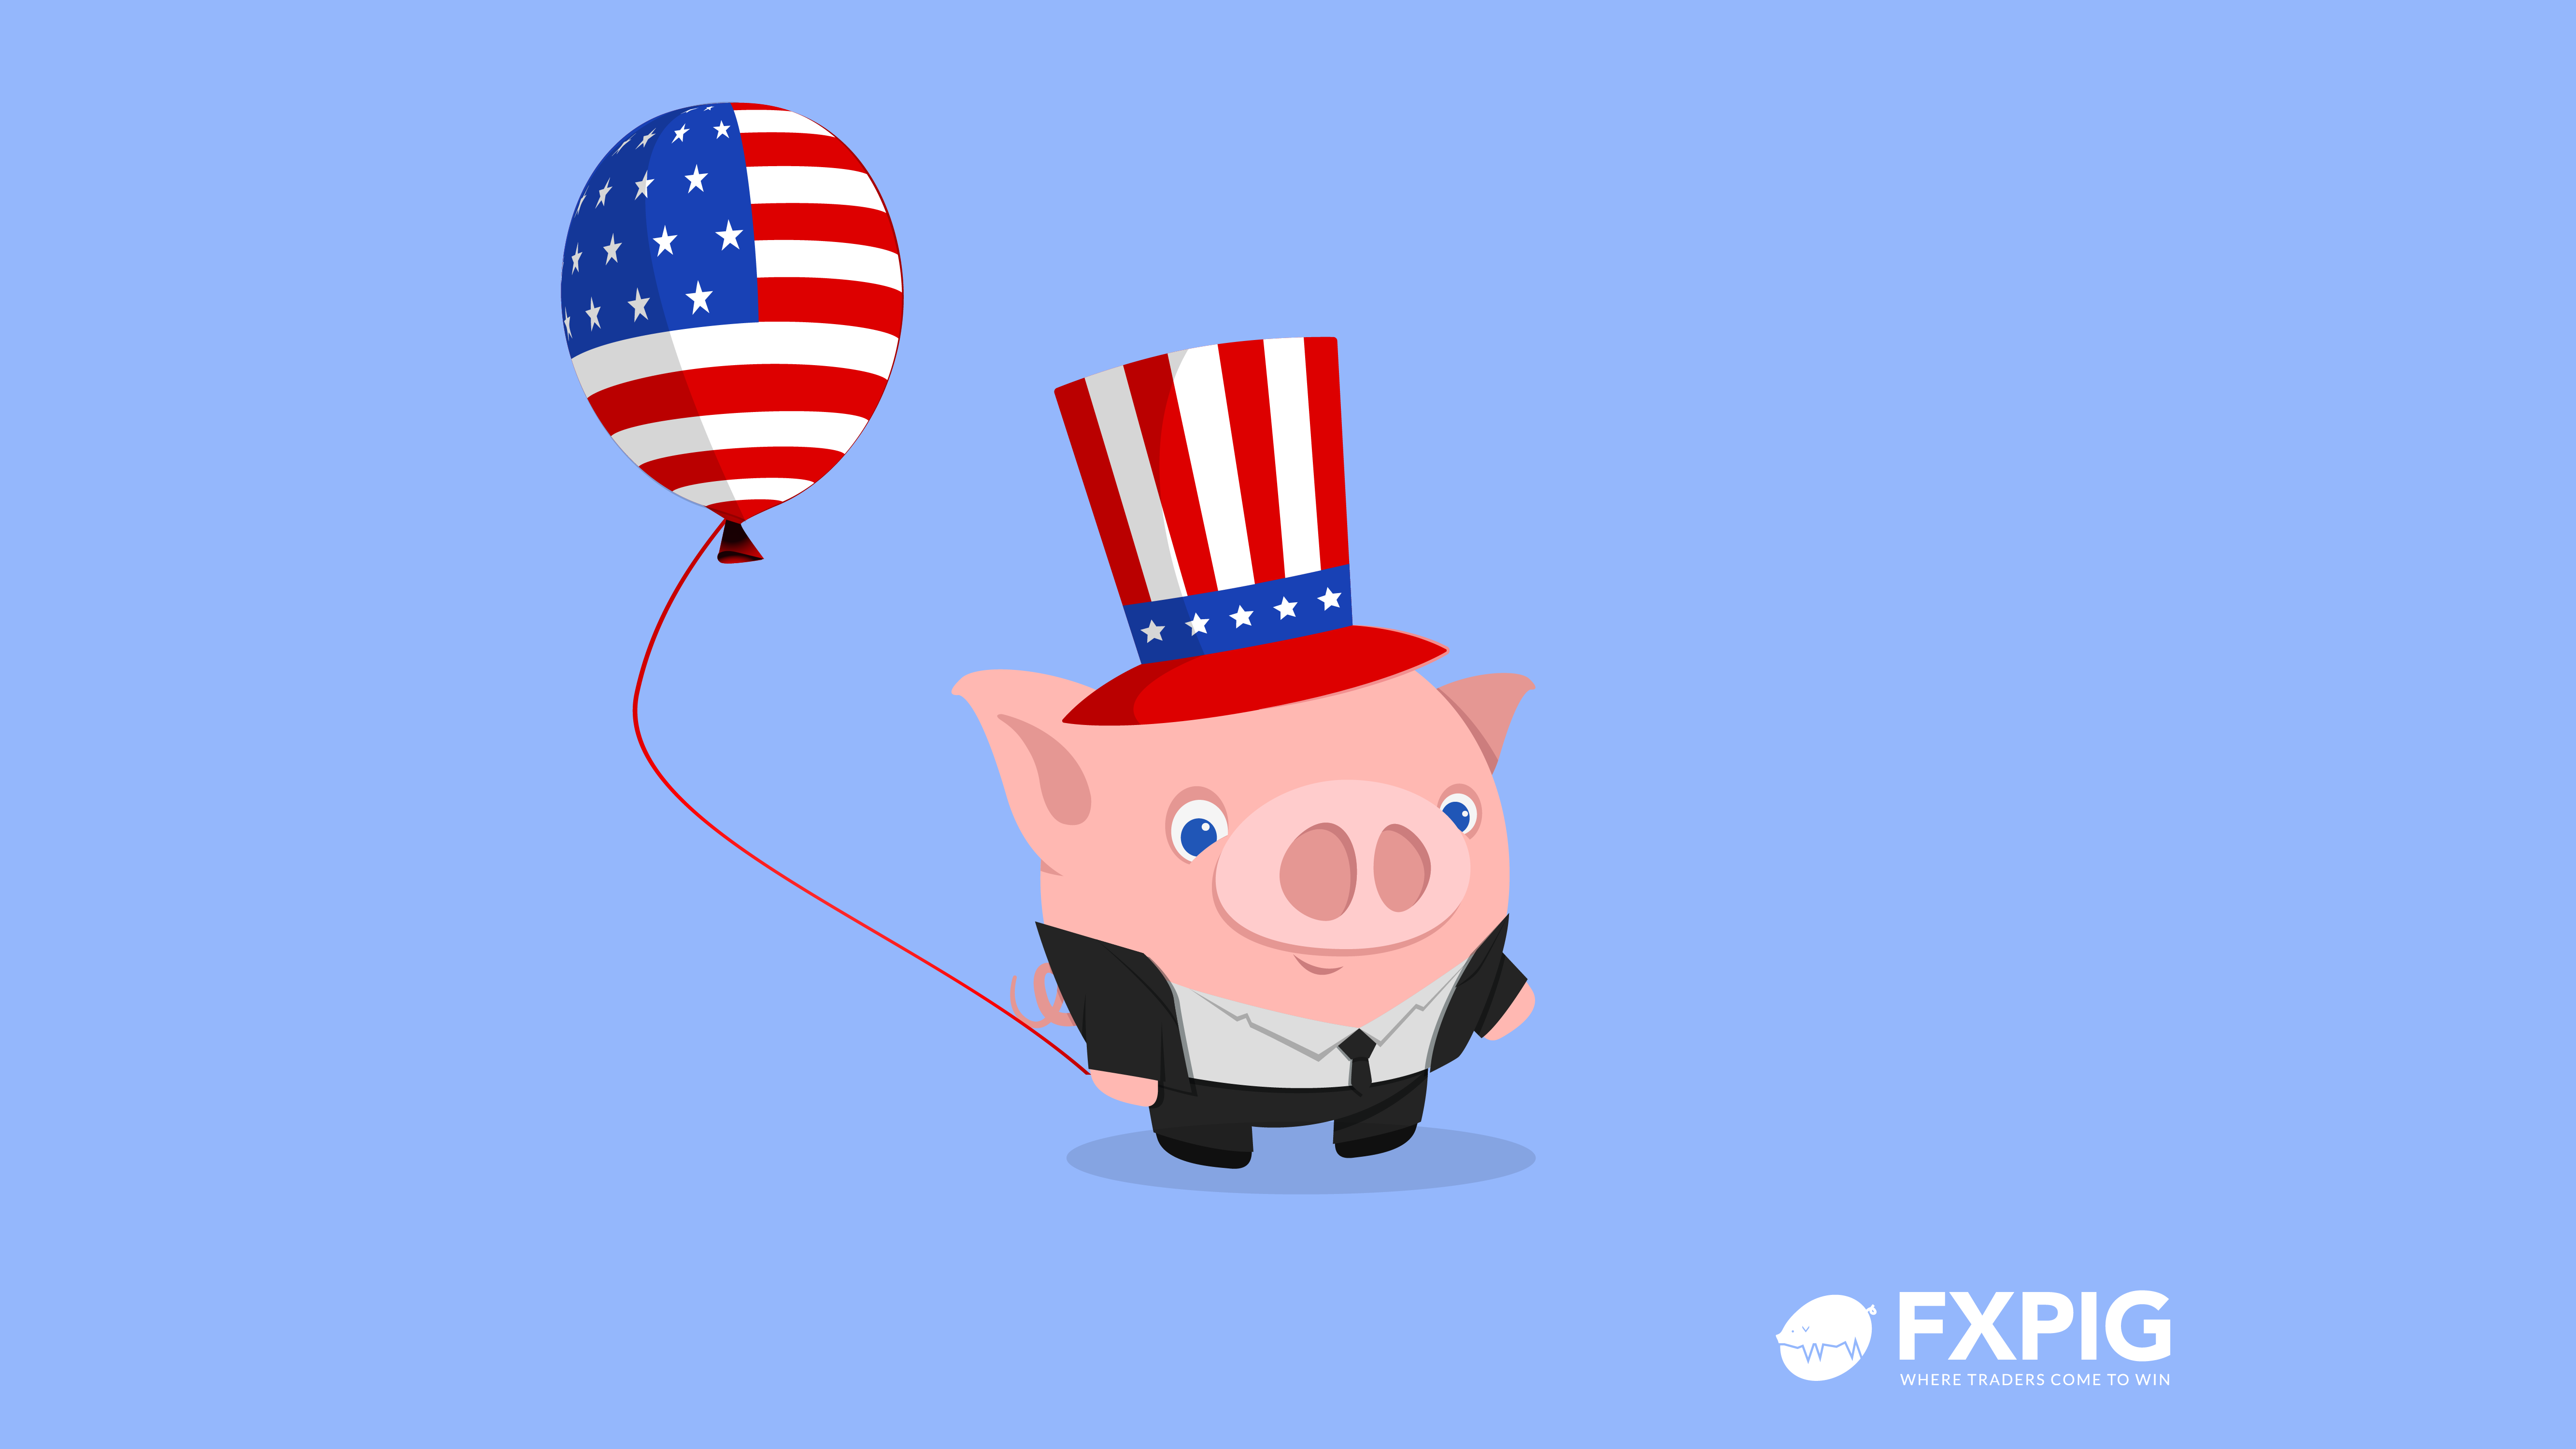 FOREX_Independence-day-of-US_FXPIG